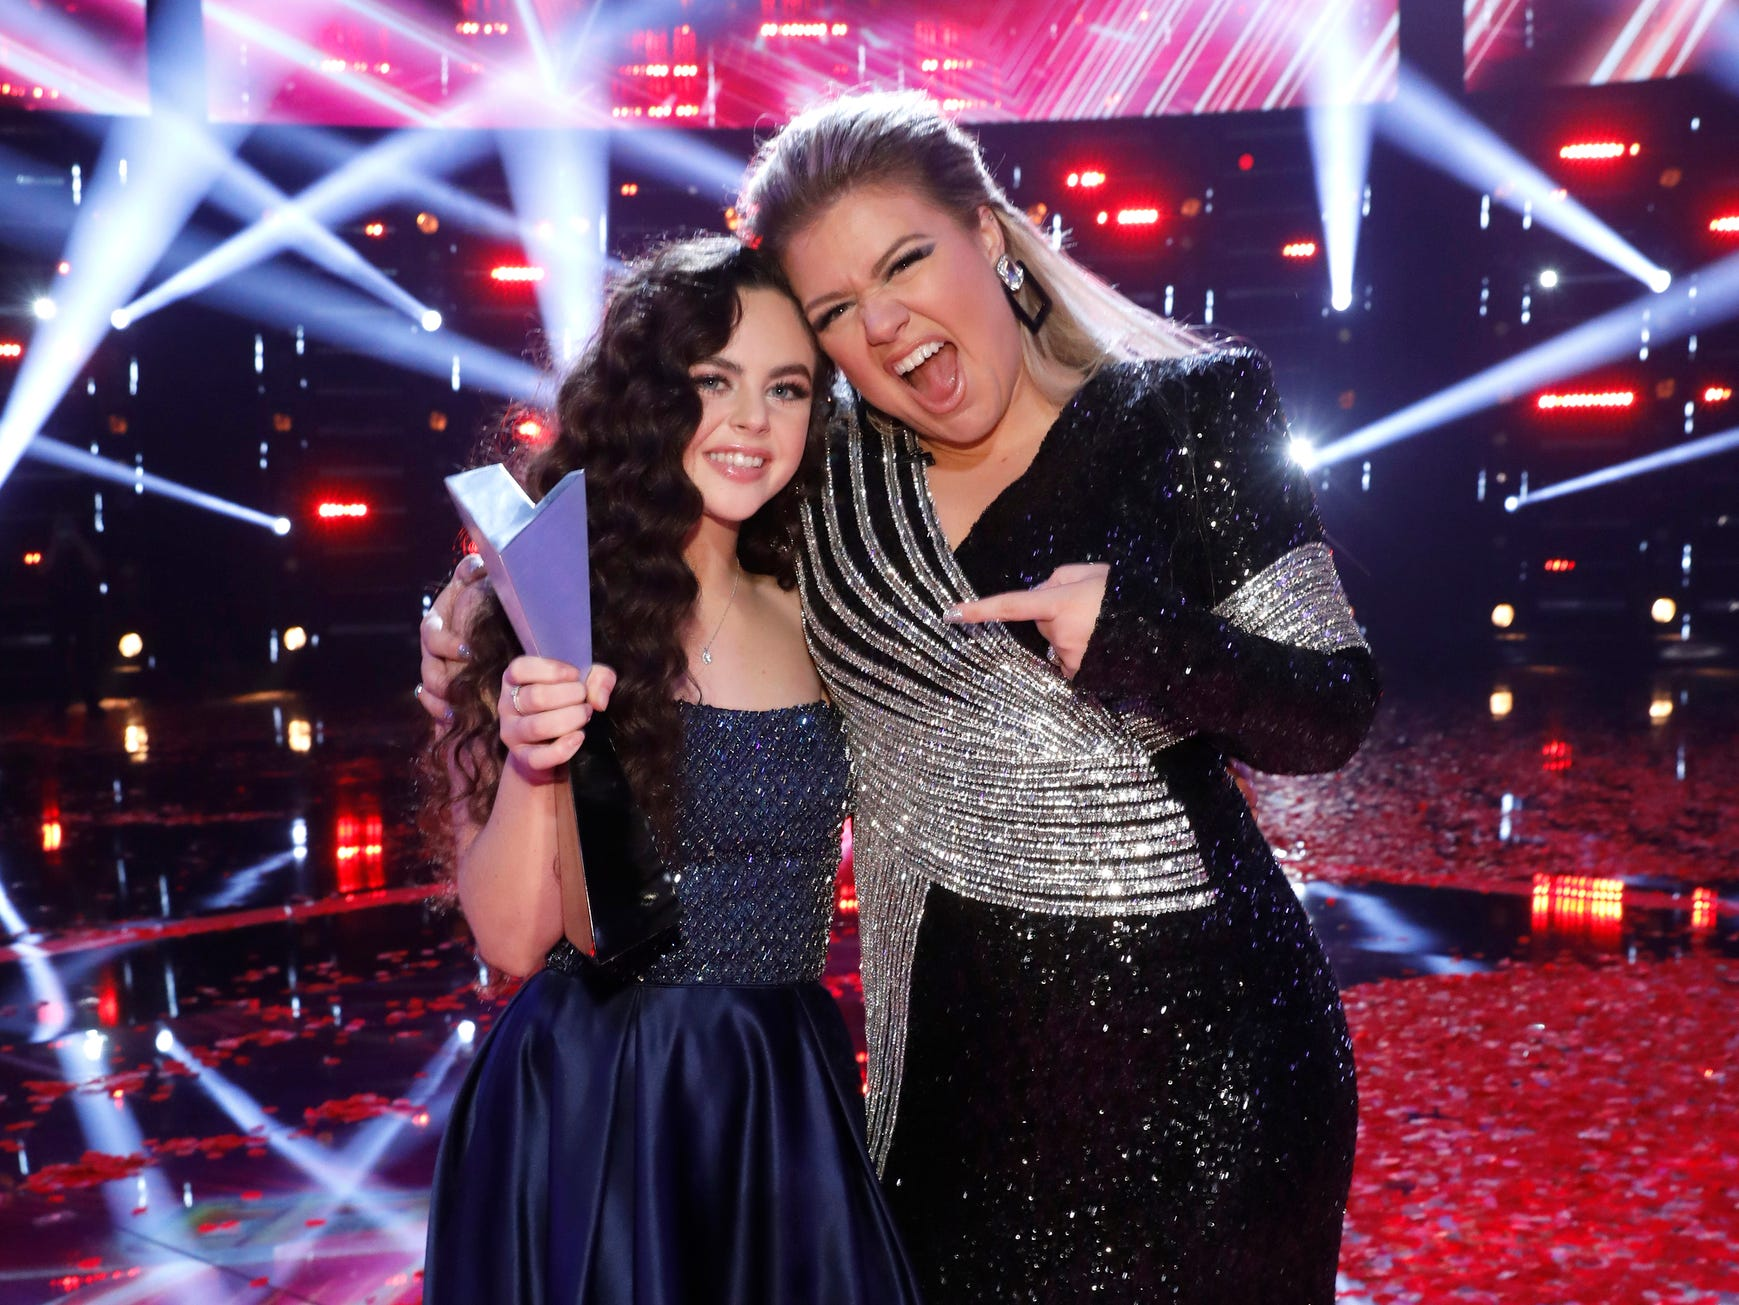 """This photo provided by NBC shows """"The Voice"""" finalist, Chevel Shepherd, left, for season 15, and singer Kelly Clarkson Tuesday, Dec. 18, 2018, in Universal City, Calif. (Trae Patton/NBC via AP) ORG XMIT: CAET502"""